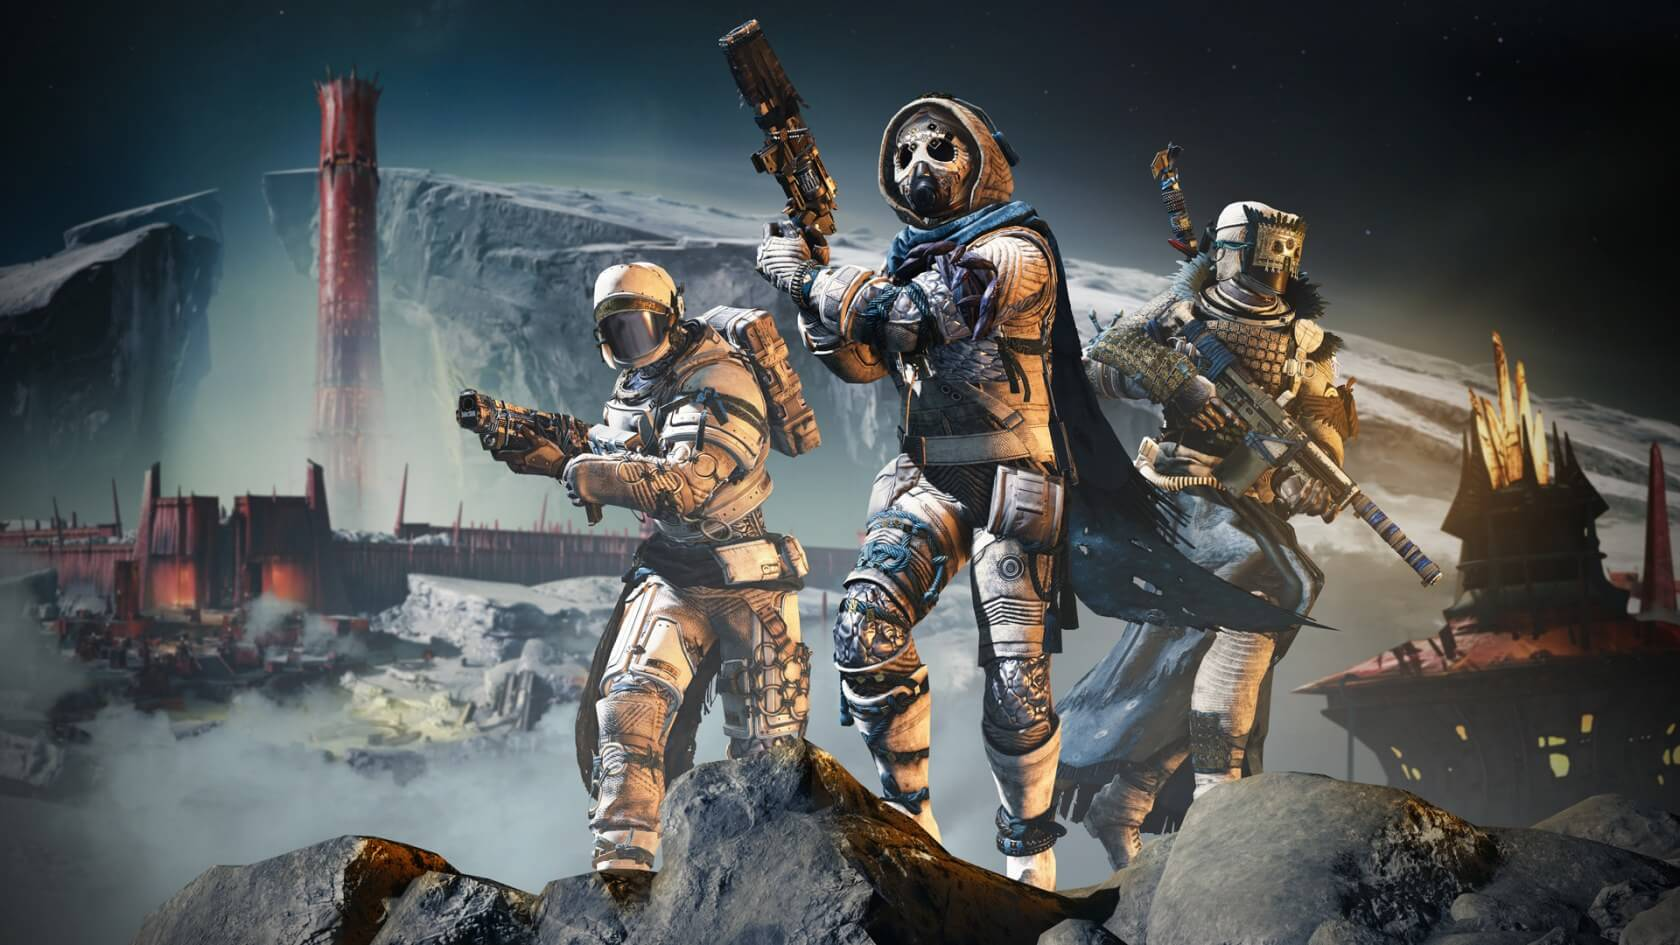 Bungie Will Release A New Non-Destiny Game By 2025